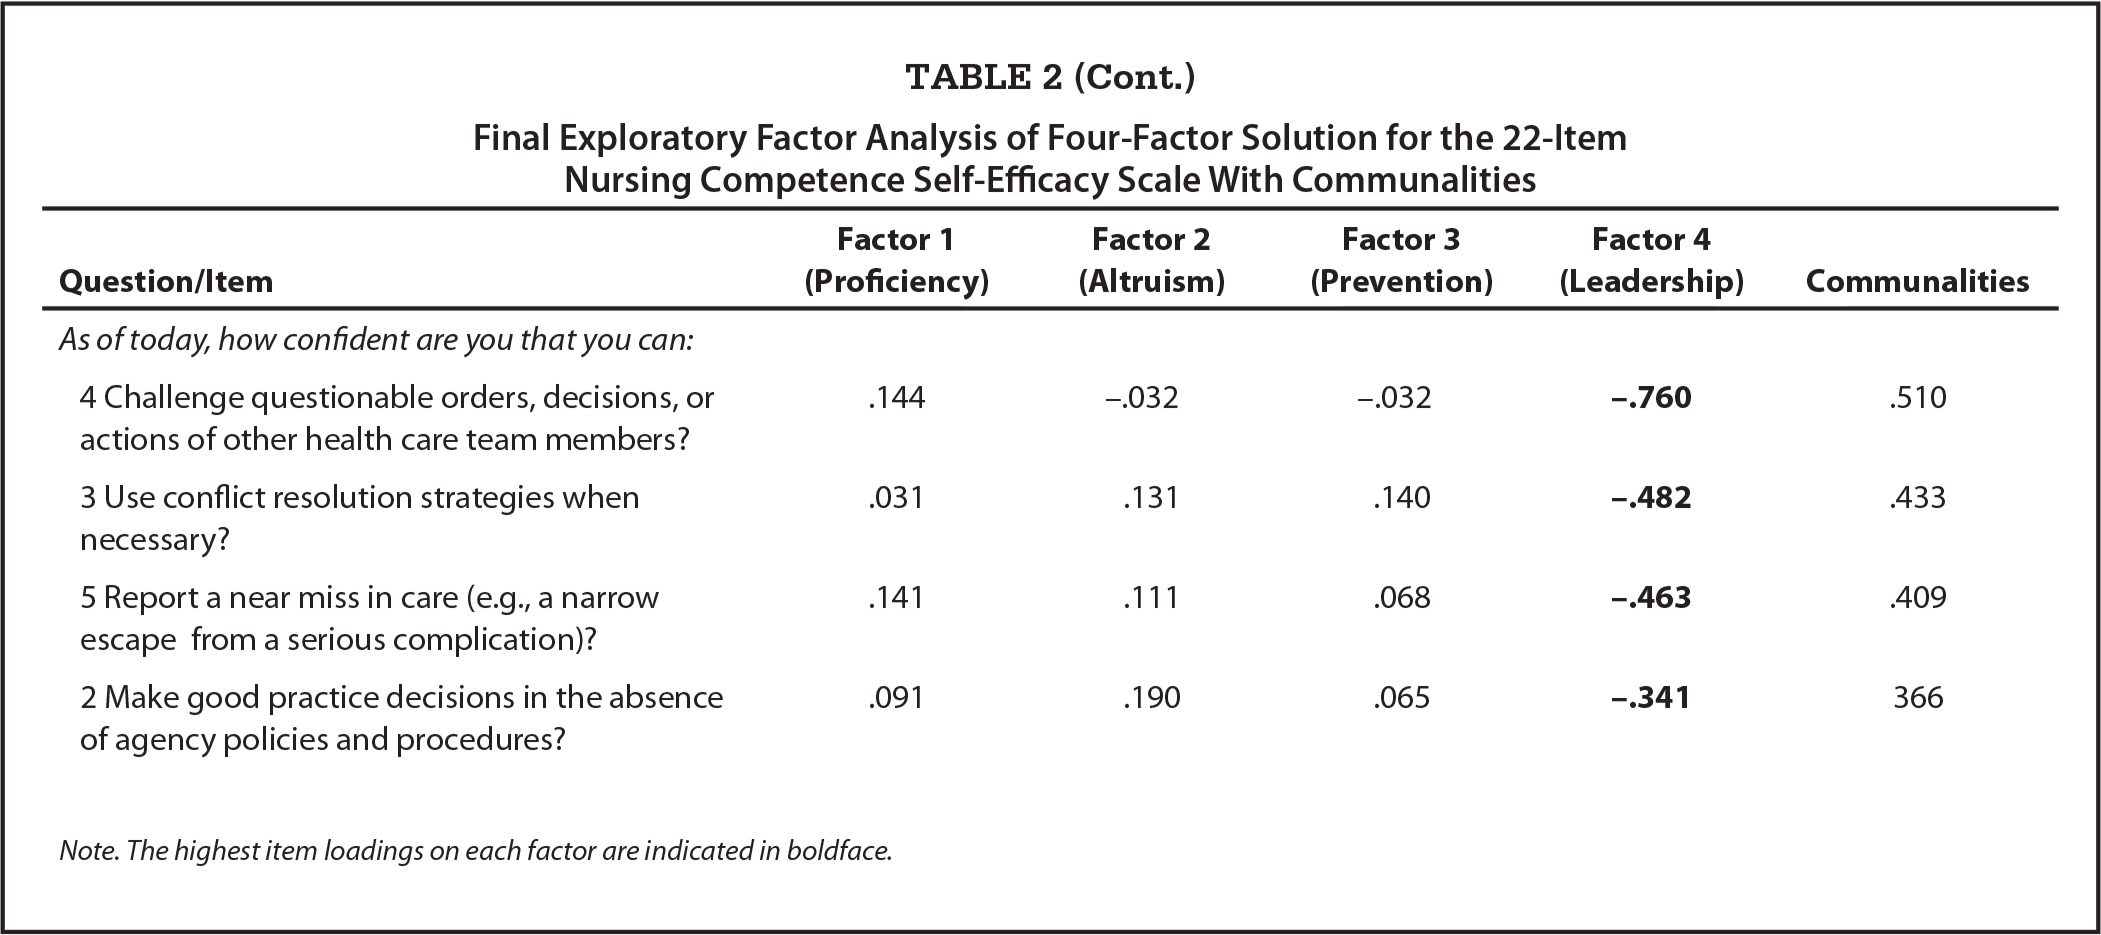 Final Exploratory Factor Analysis of Four-Factor Solution for the 22-Item Nursing Competence Self-Efficacy Scale With Communalities